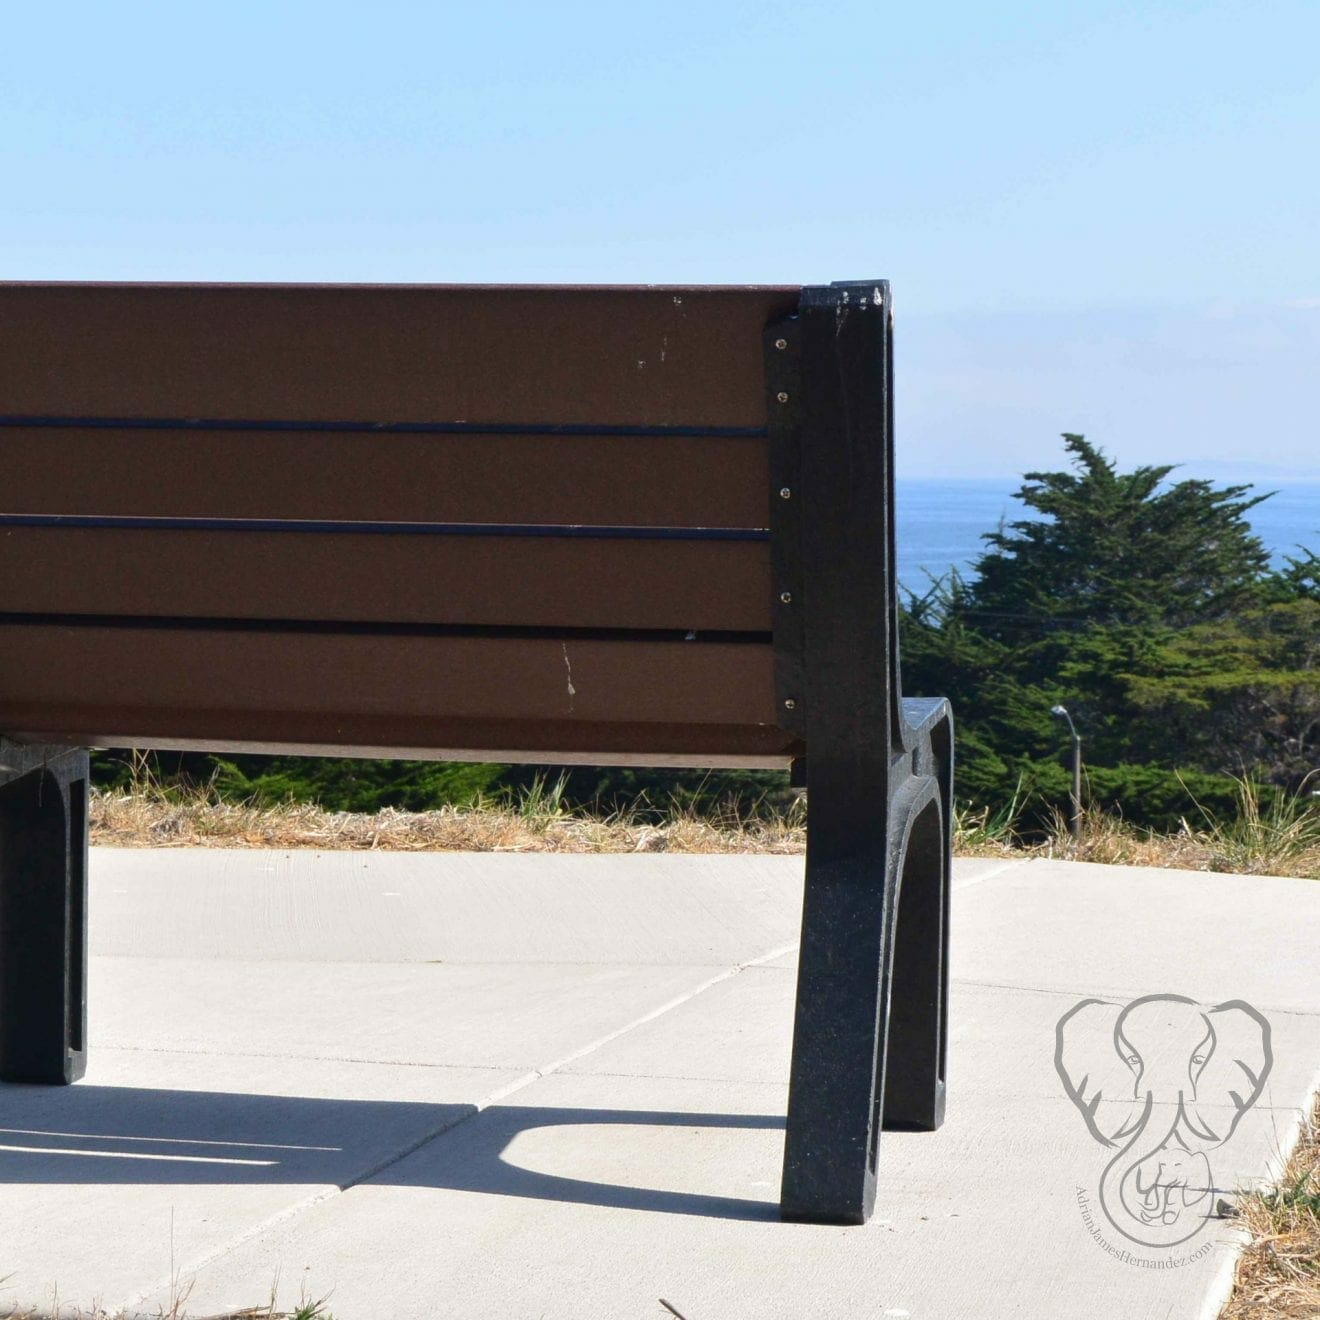 Bench in California (Miranda Hernandez)